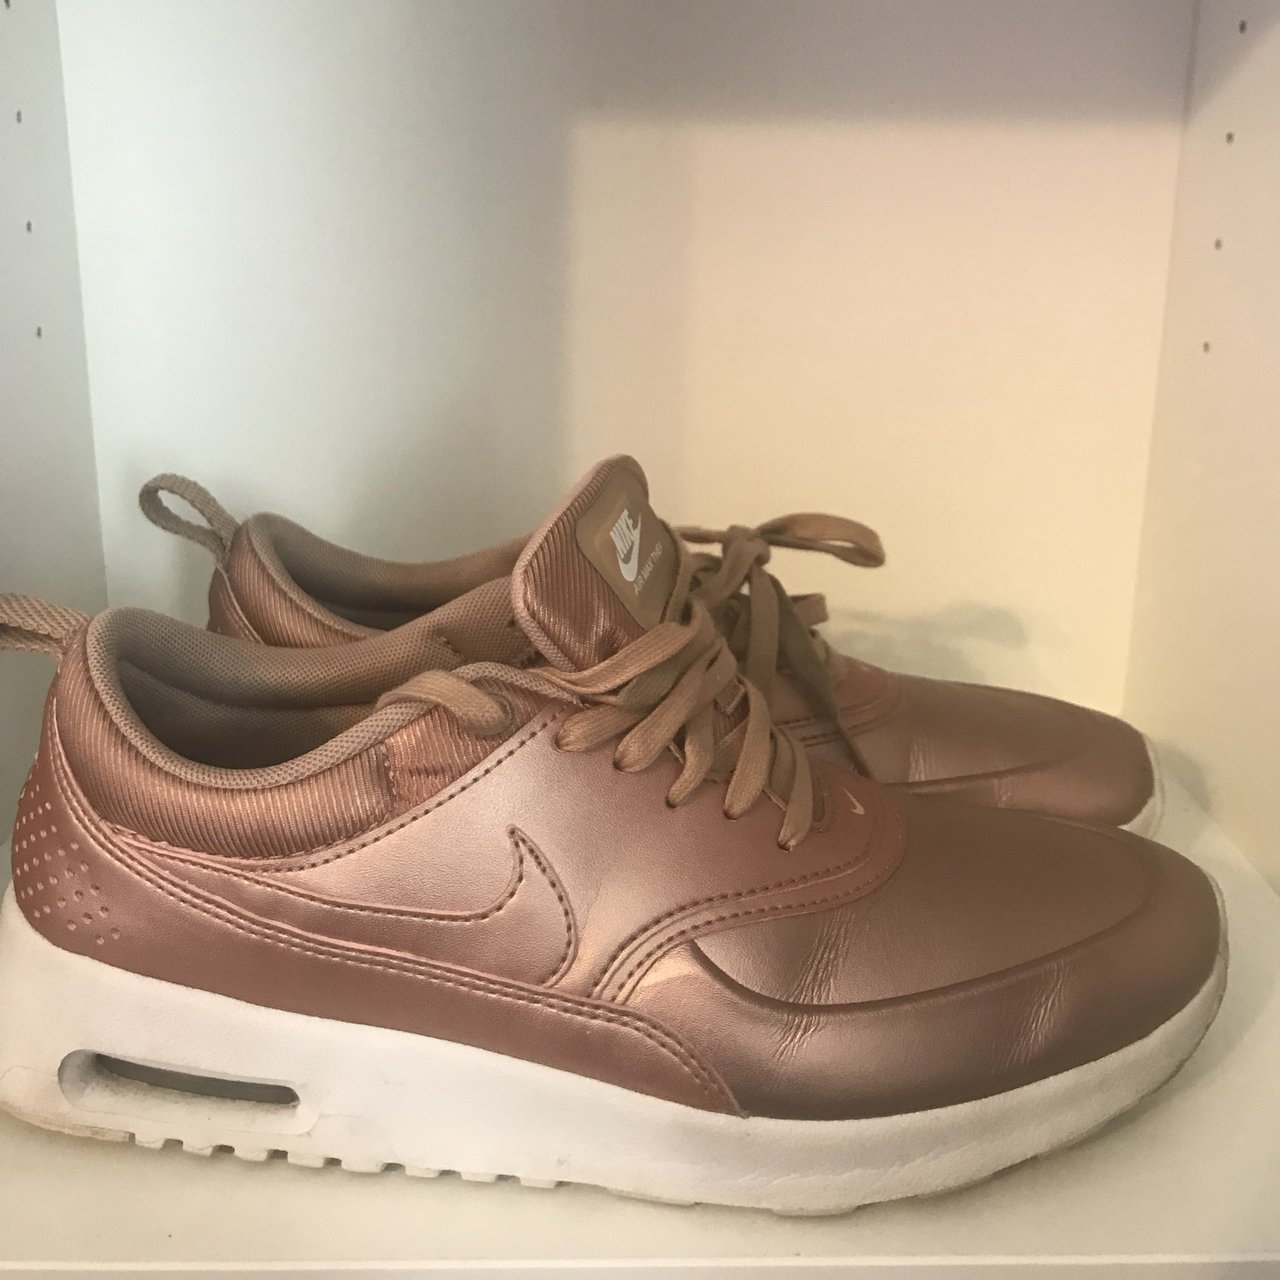 finest selection 7e76a d233e  akhadija. 9 months ago. Rochester, United States. Rose Gold Nike Air Max  Thea s ...